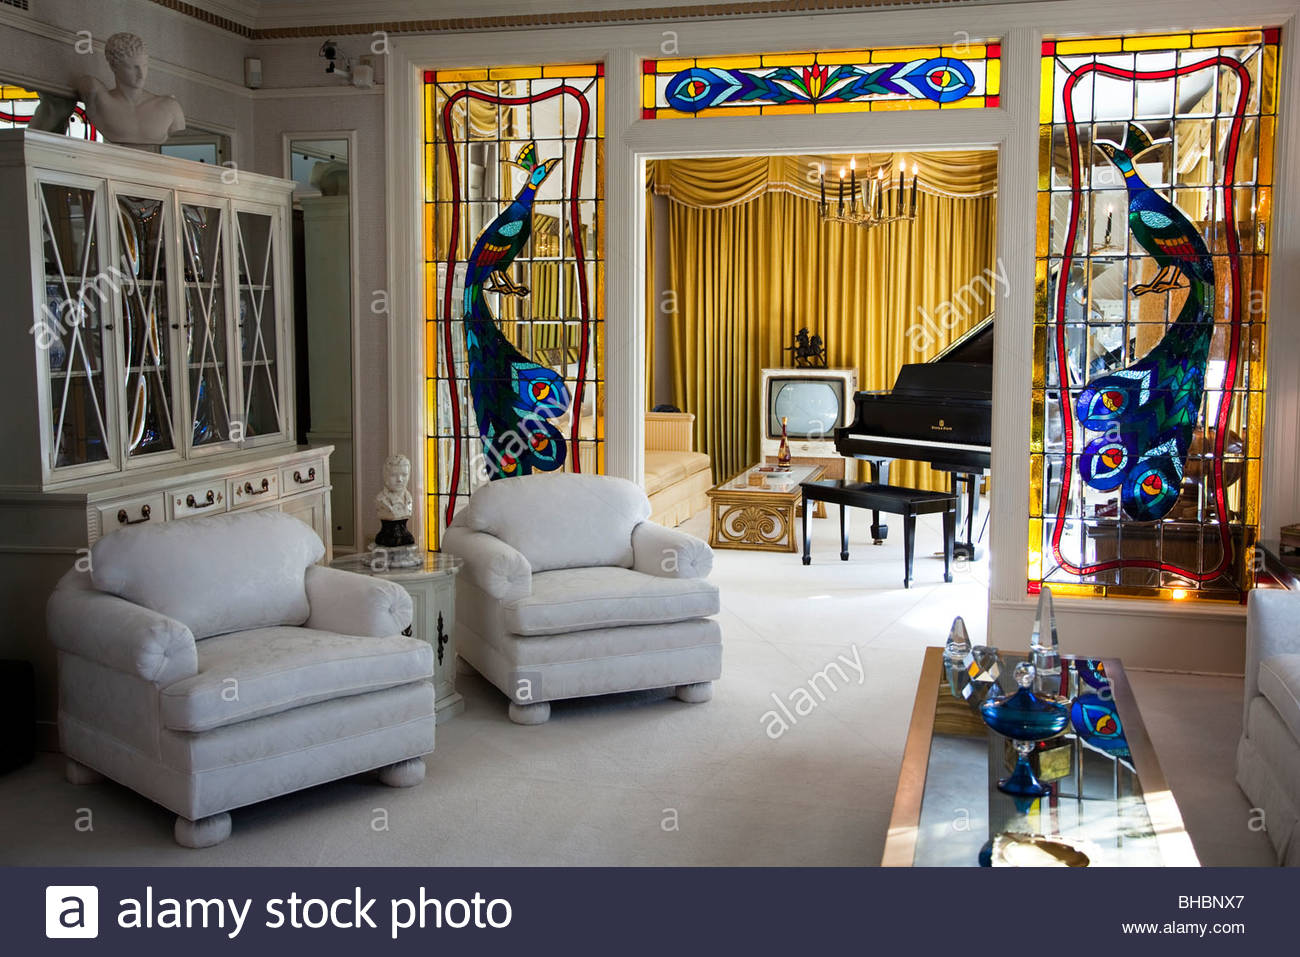 Aaron America coffee table Elvis Presley famous Graceland icon interior King of Rock & Roll legend living room - Stock Image